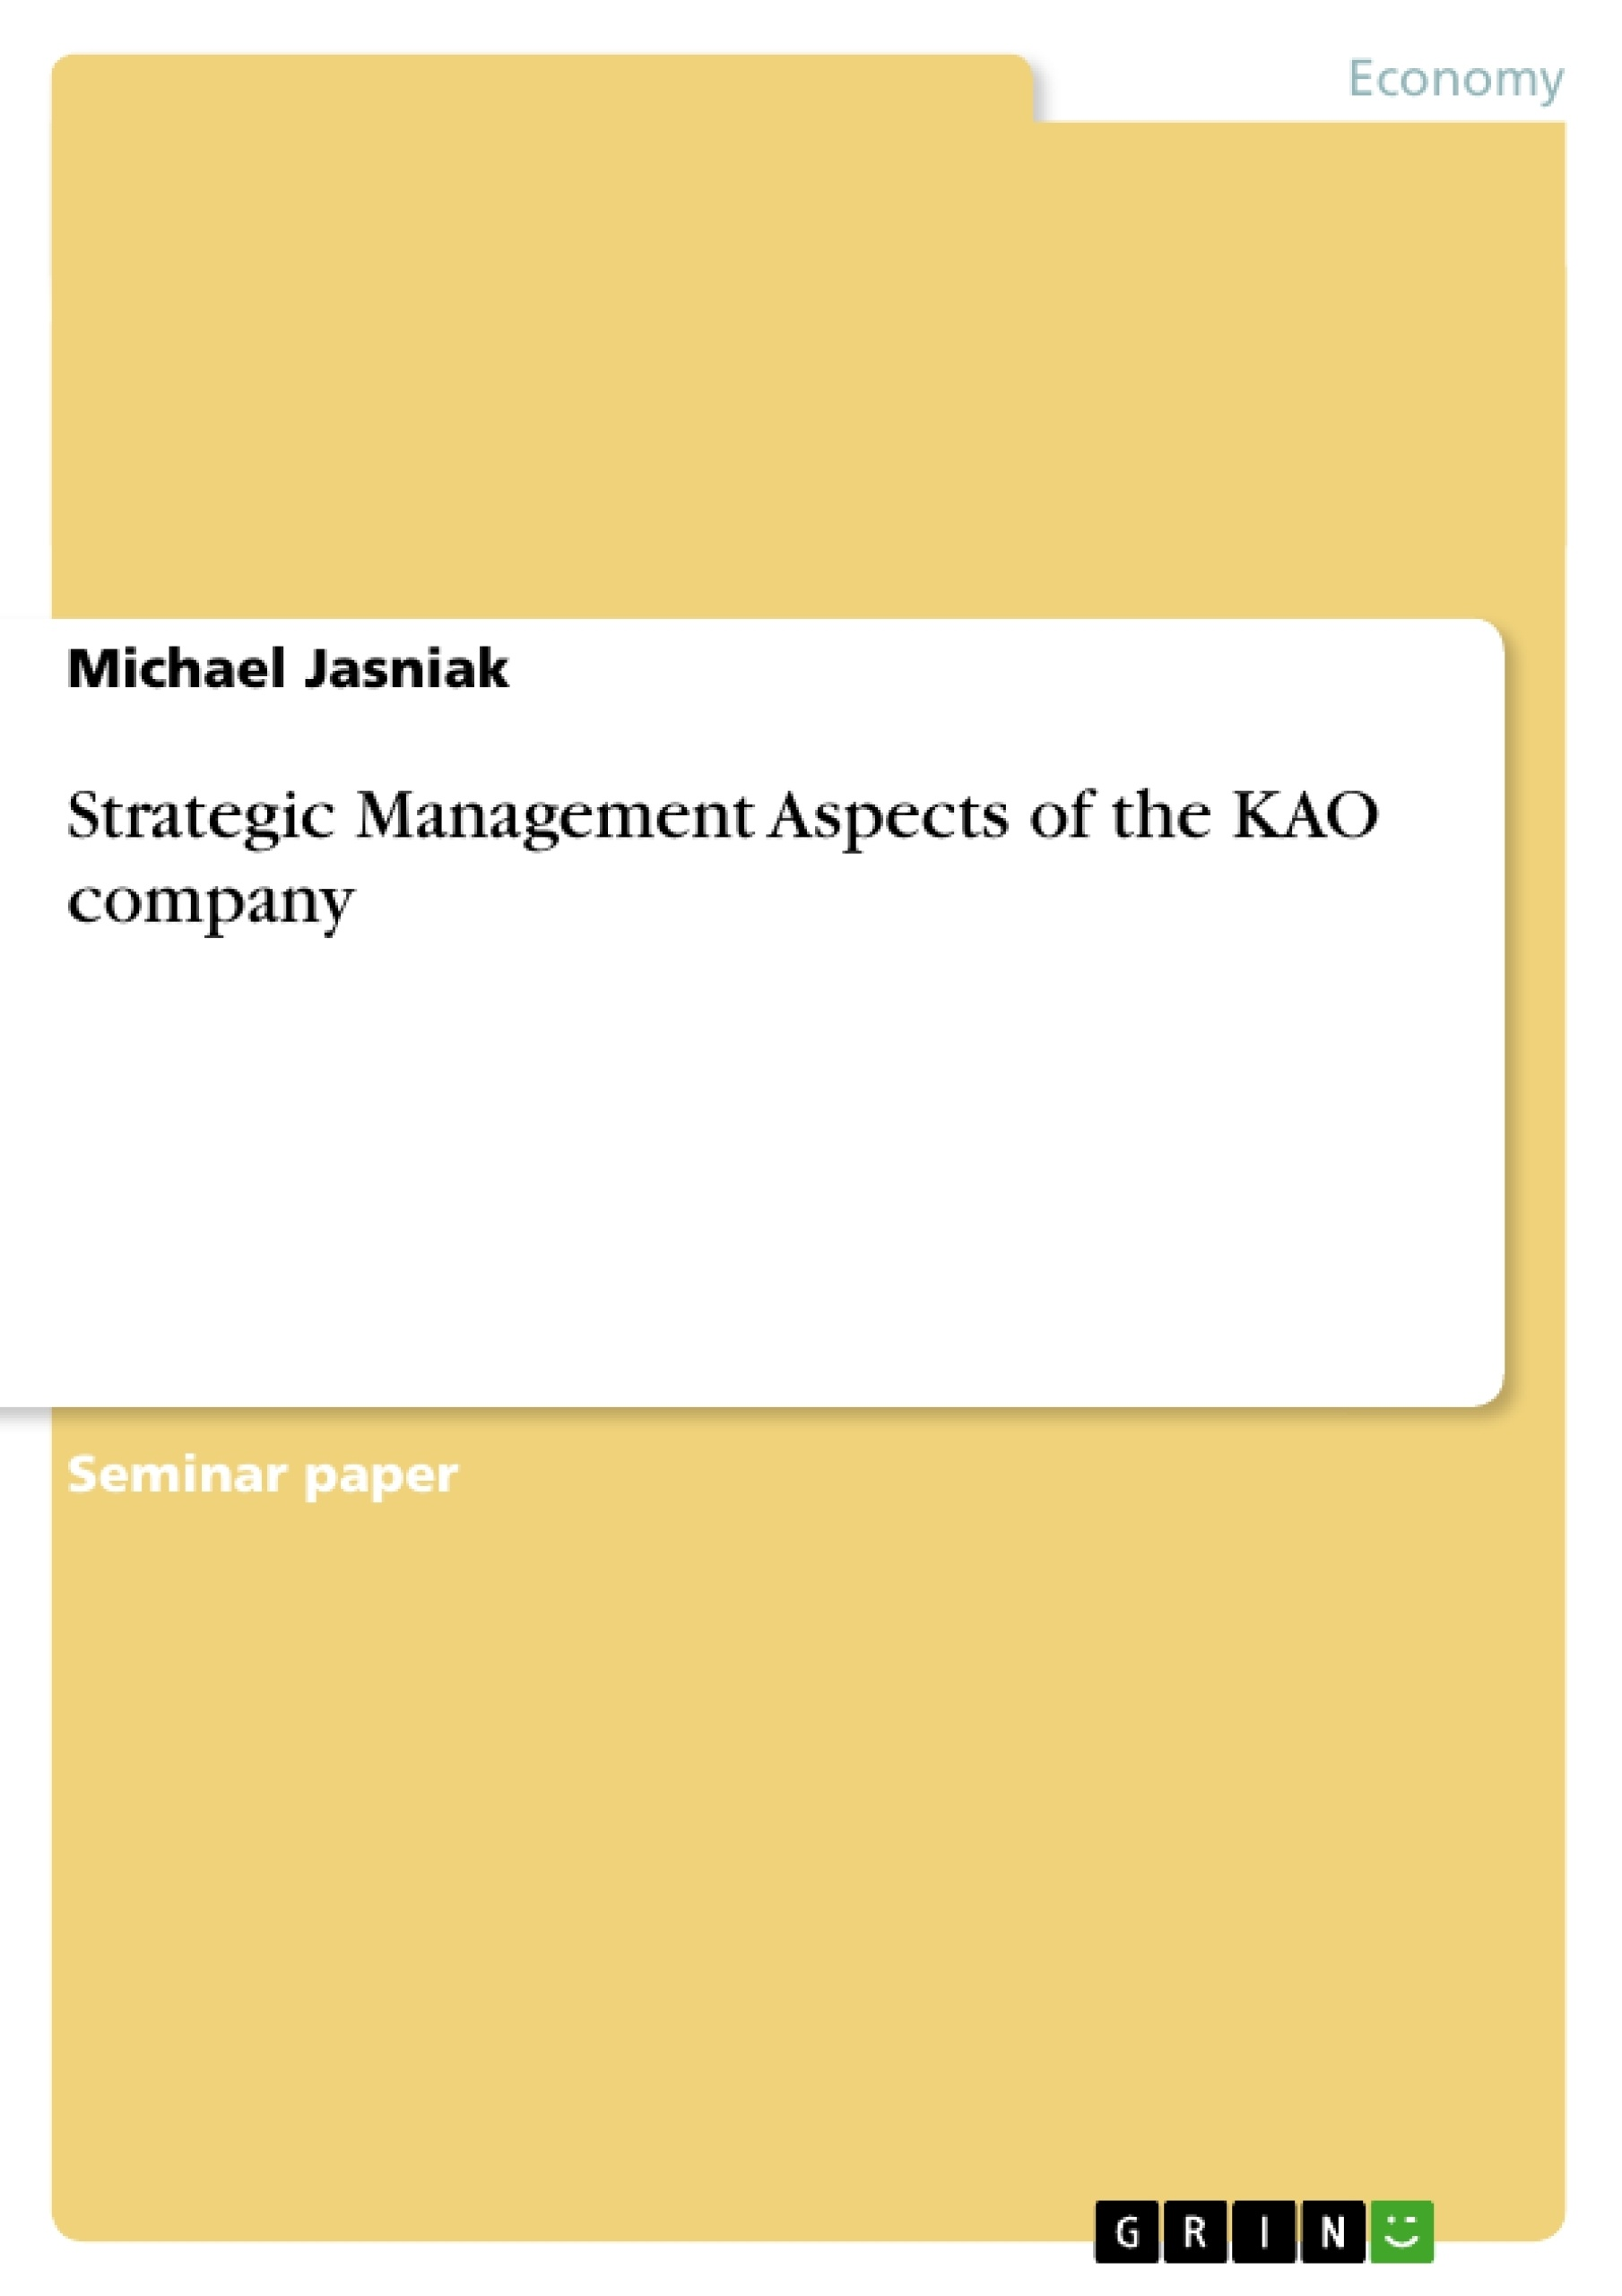 research pieces of paper with method management